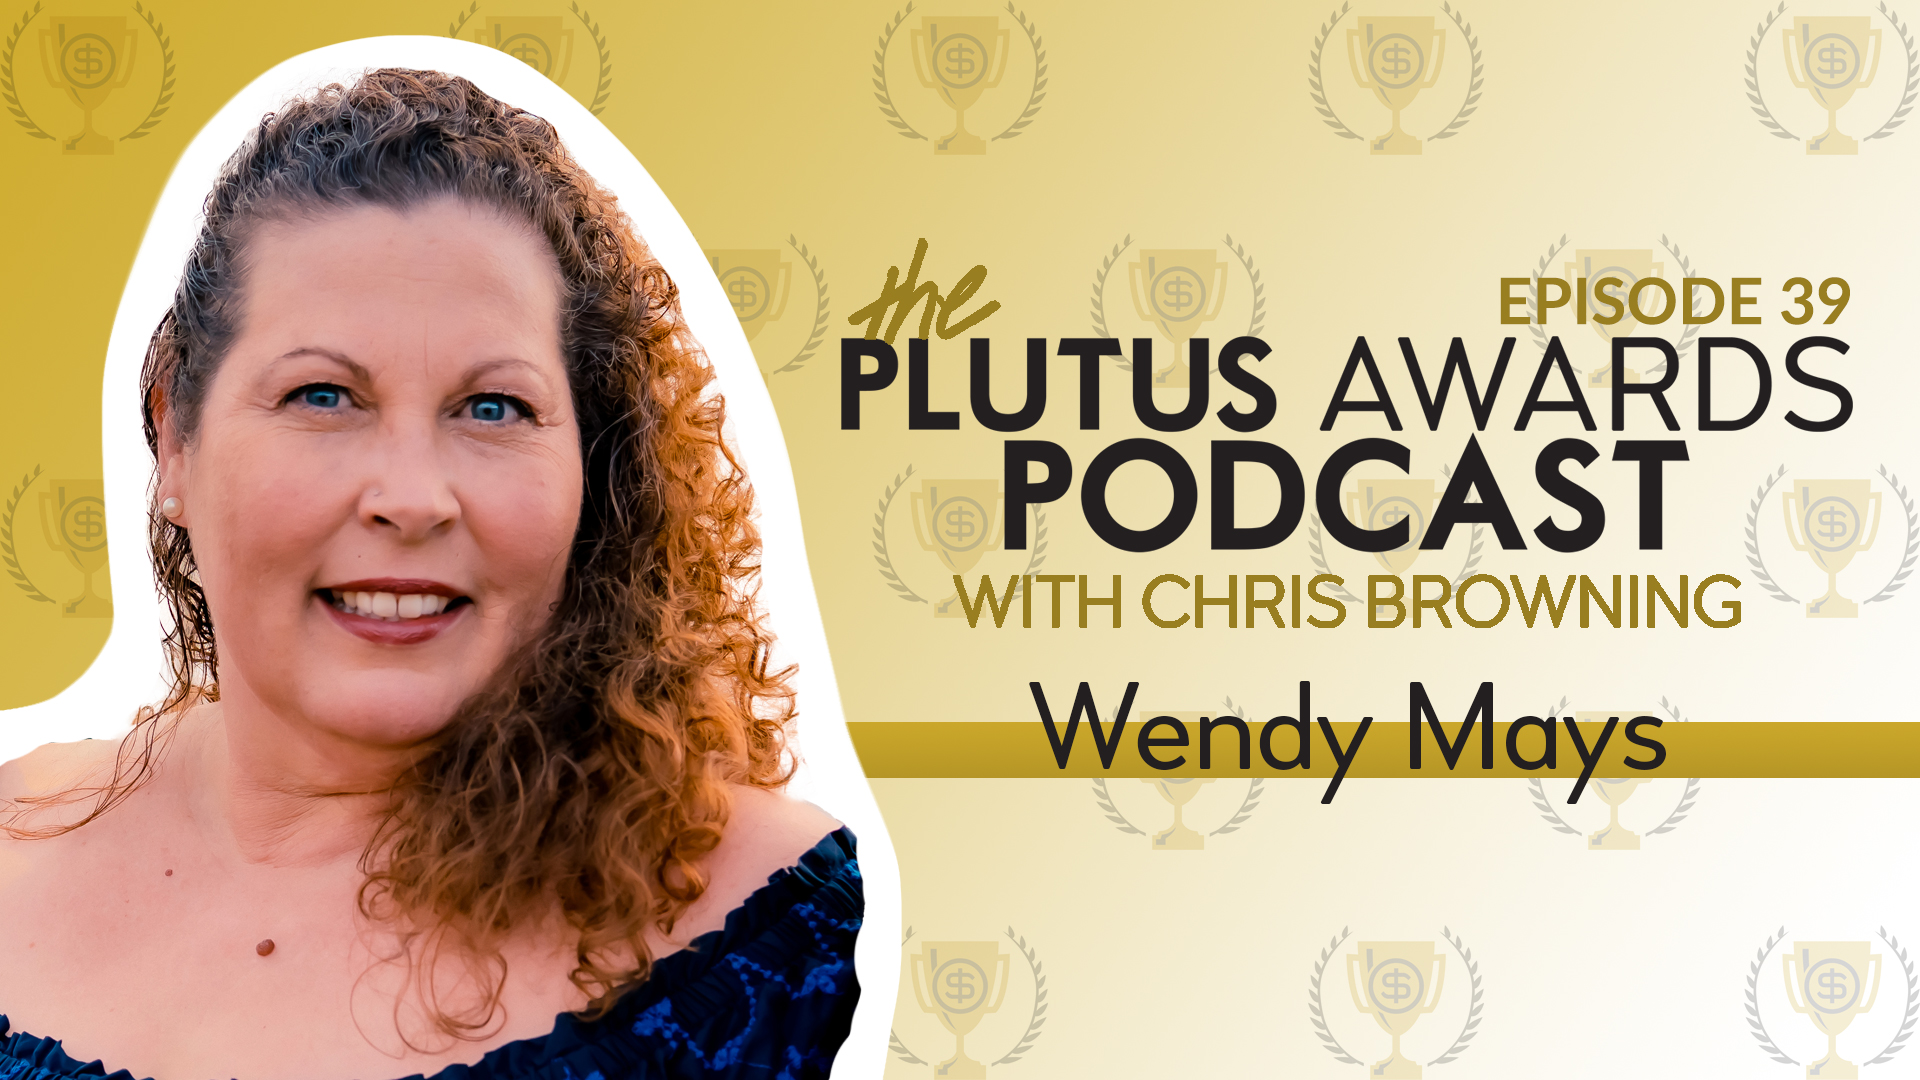 Plutus Awards Podcast - Wendy Mays Featured Image